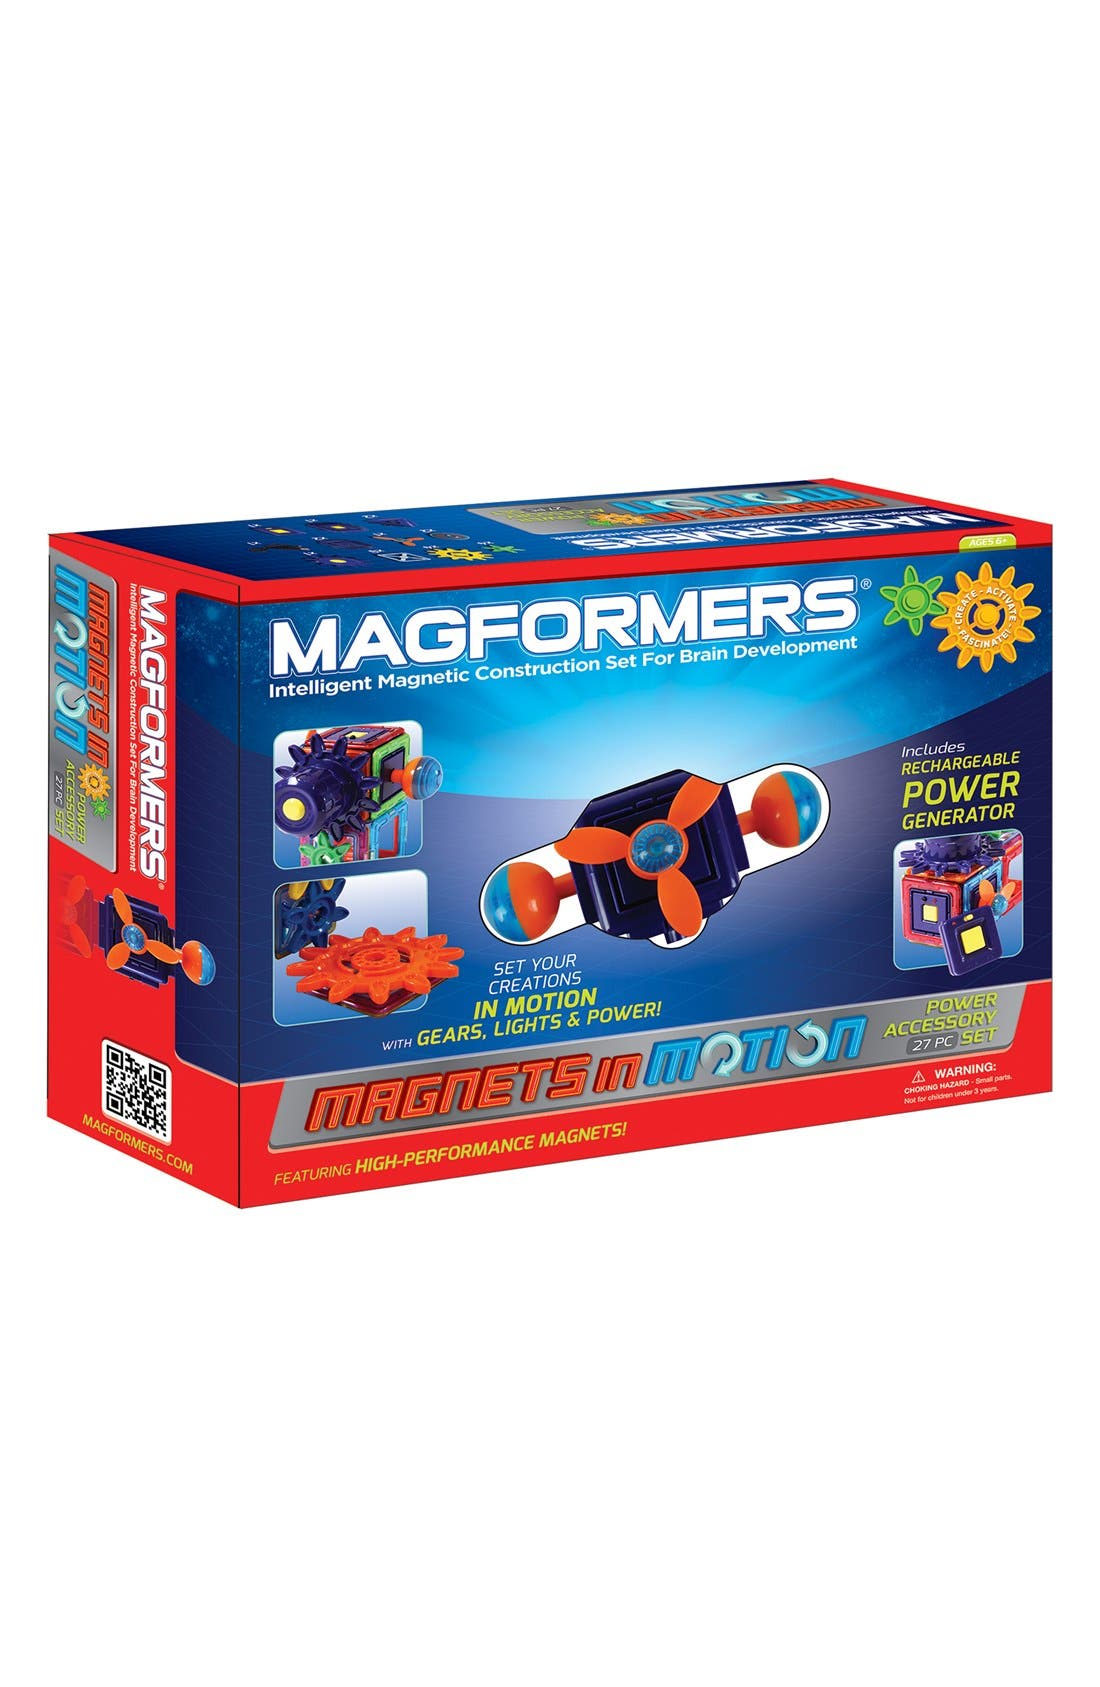 Alternate Image 1 Selected - Magformers 'Magnets in Motion' Construction Set